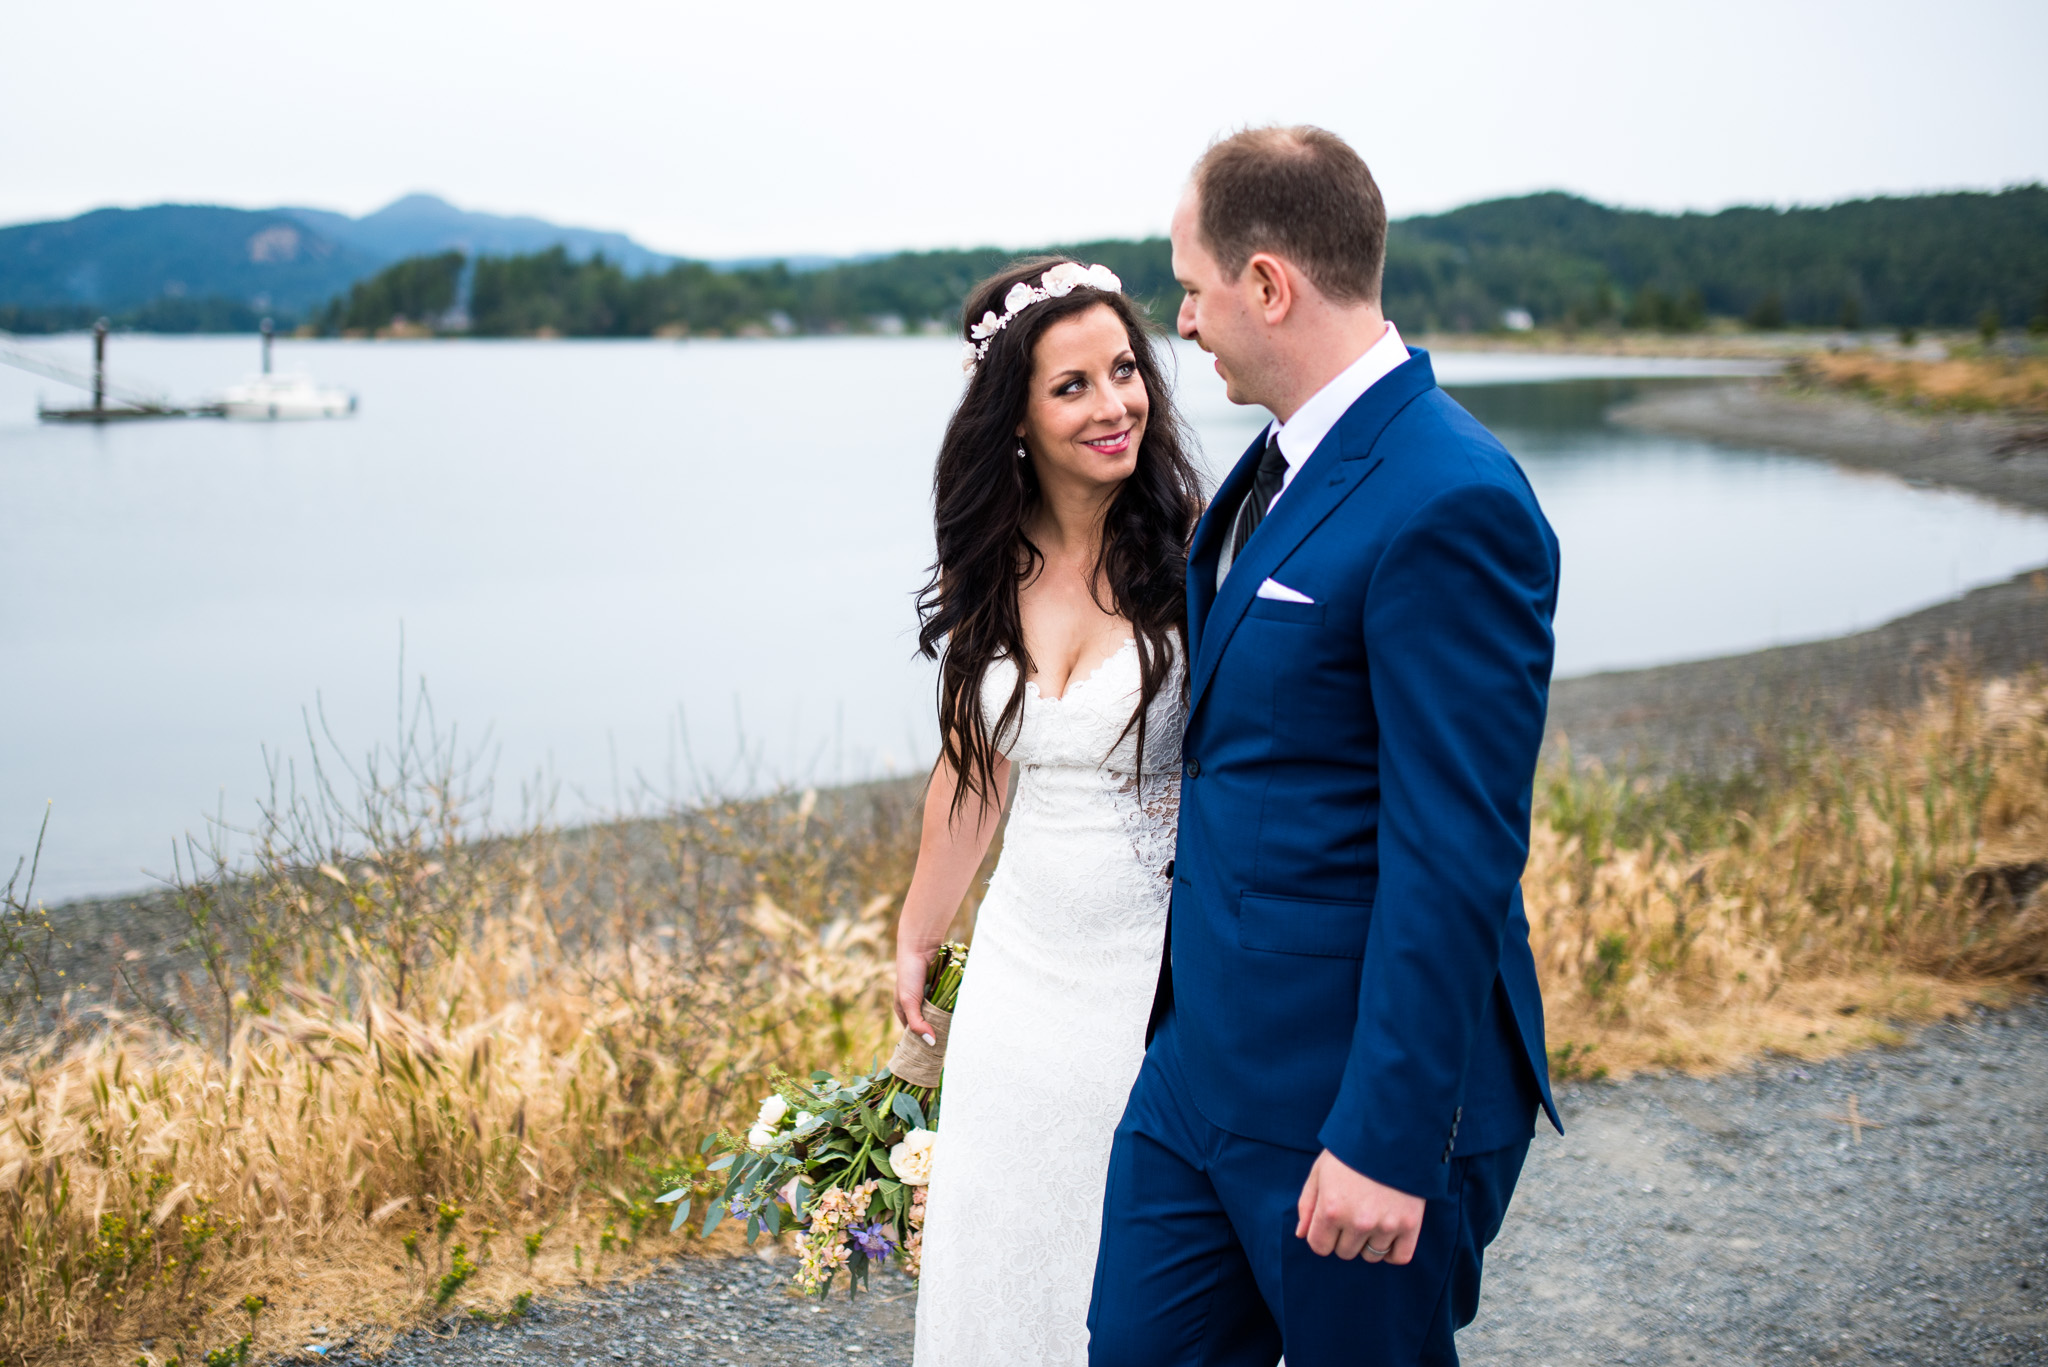 victoria-wedding-photographer-sooke-prestige-resort-wedding-34.jpg